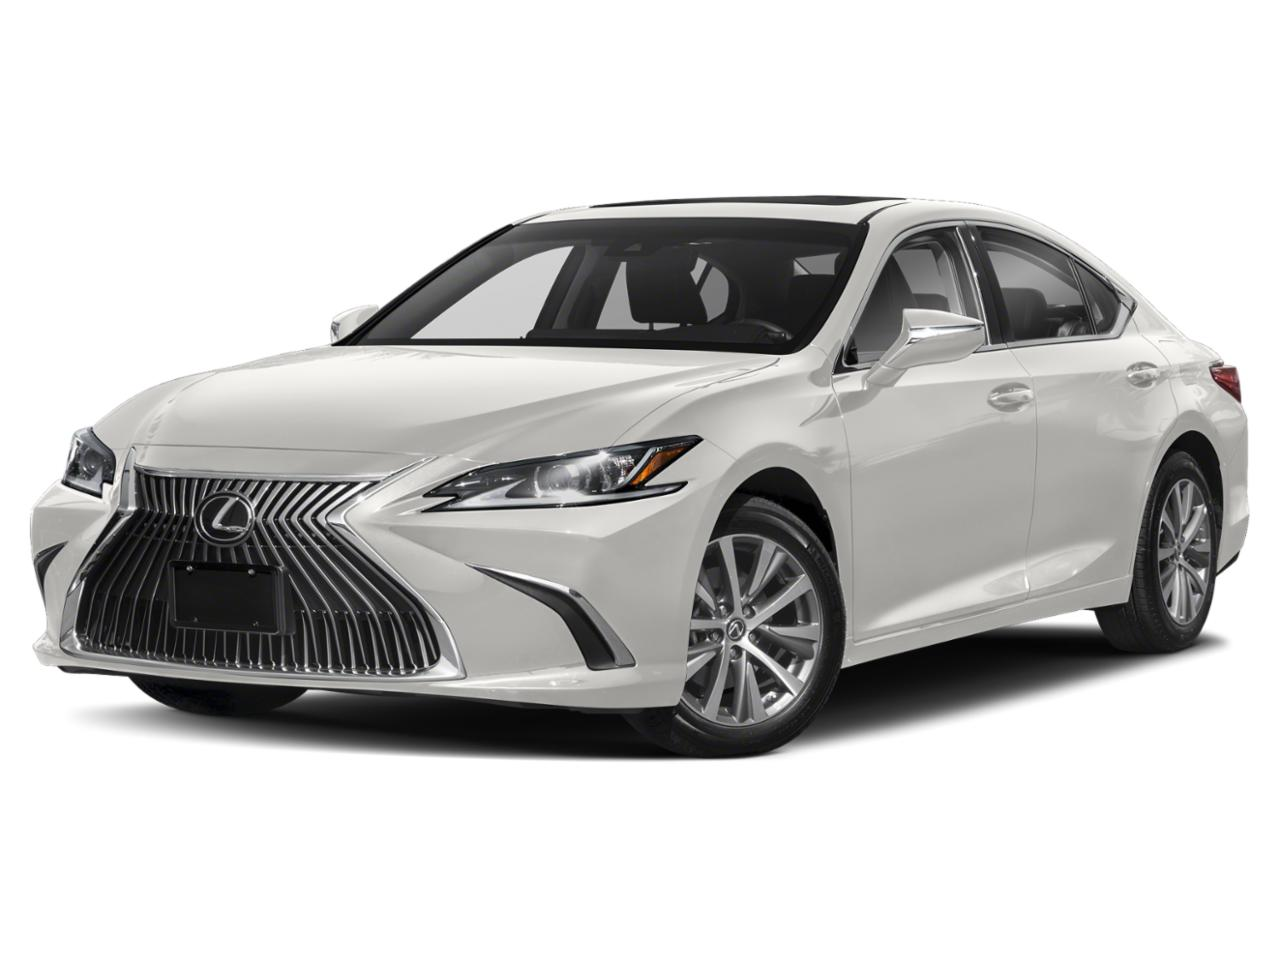 2021 Lexus ES 350 Vehicle Photo in Dallas, TX 75235